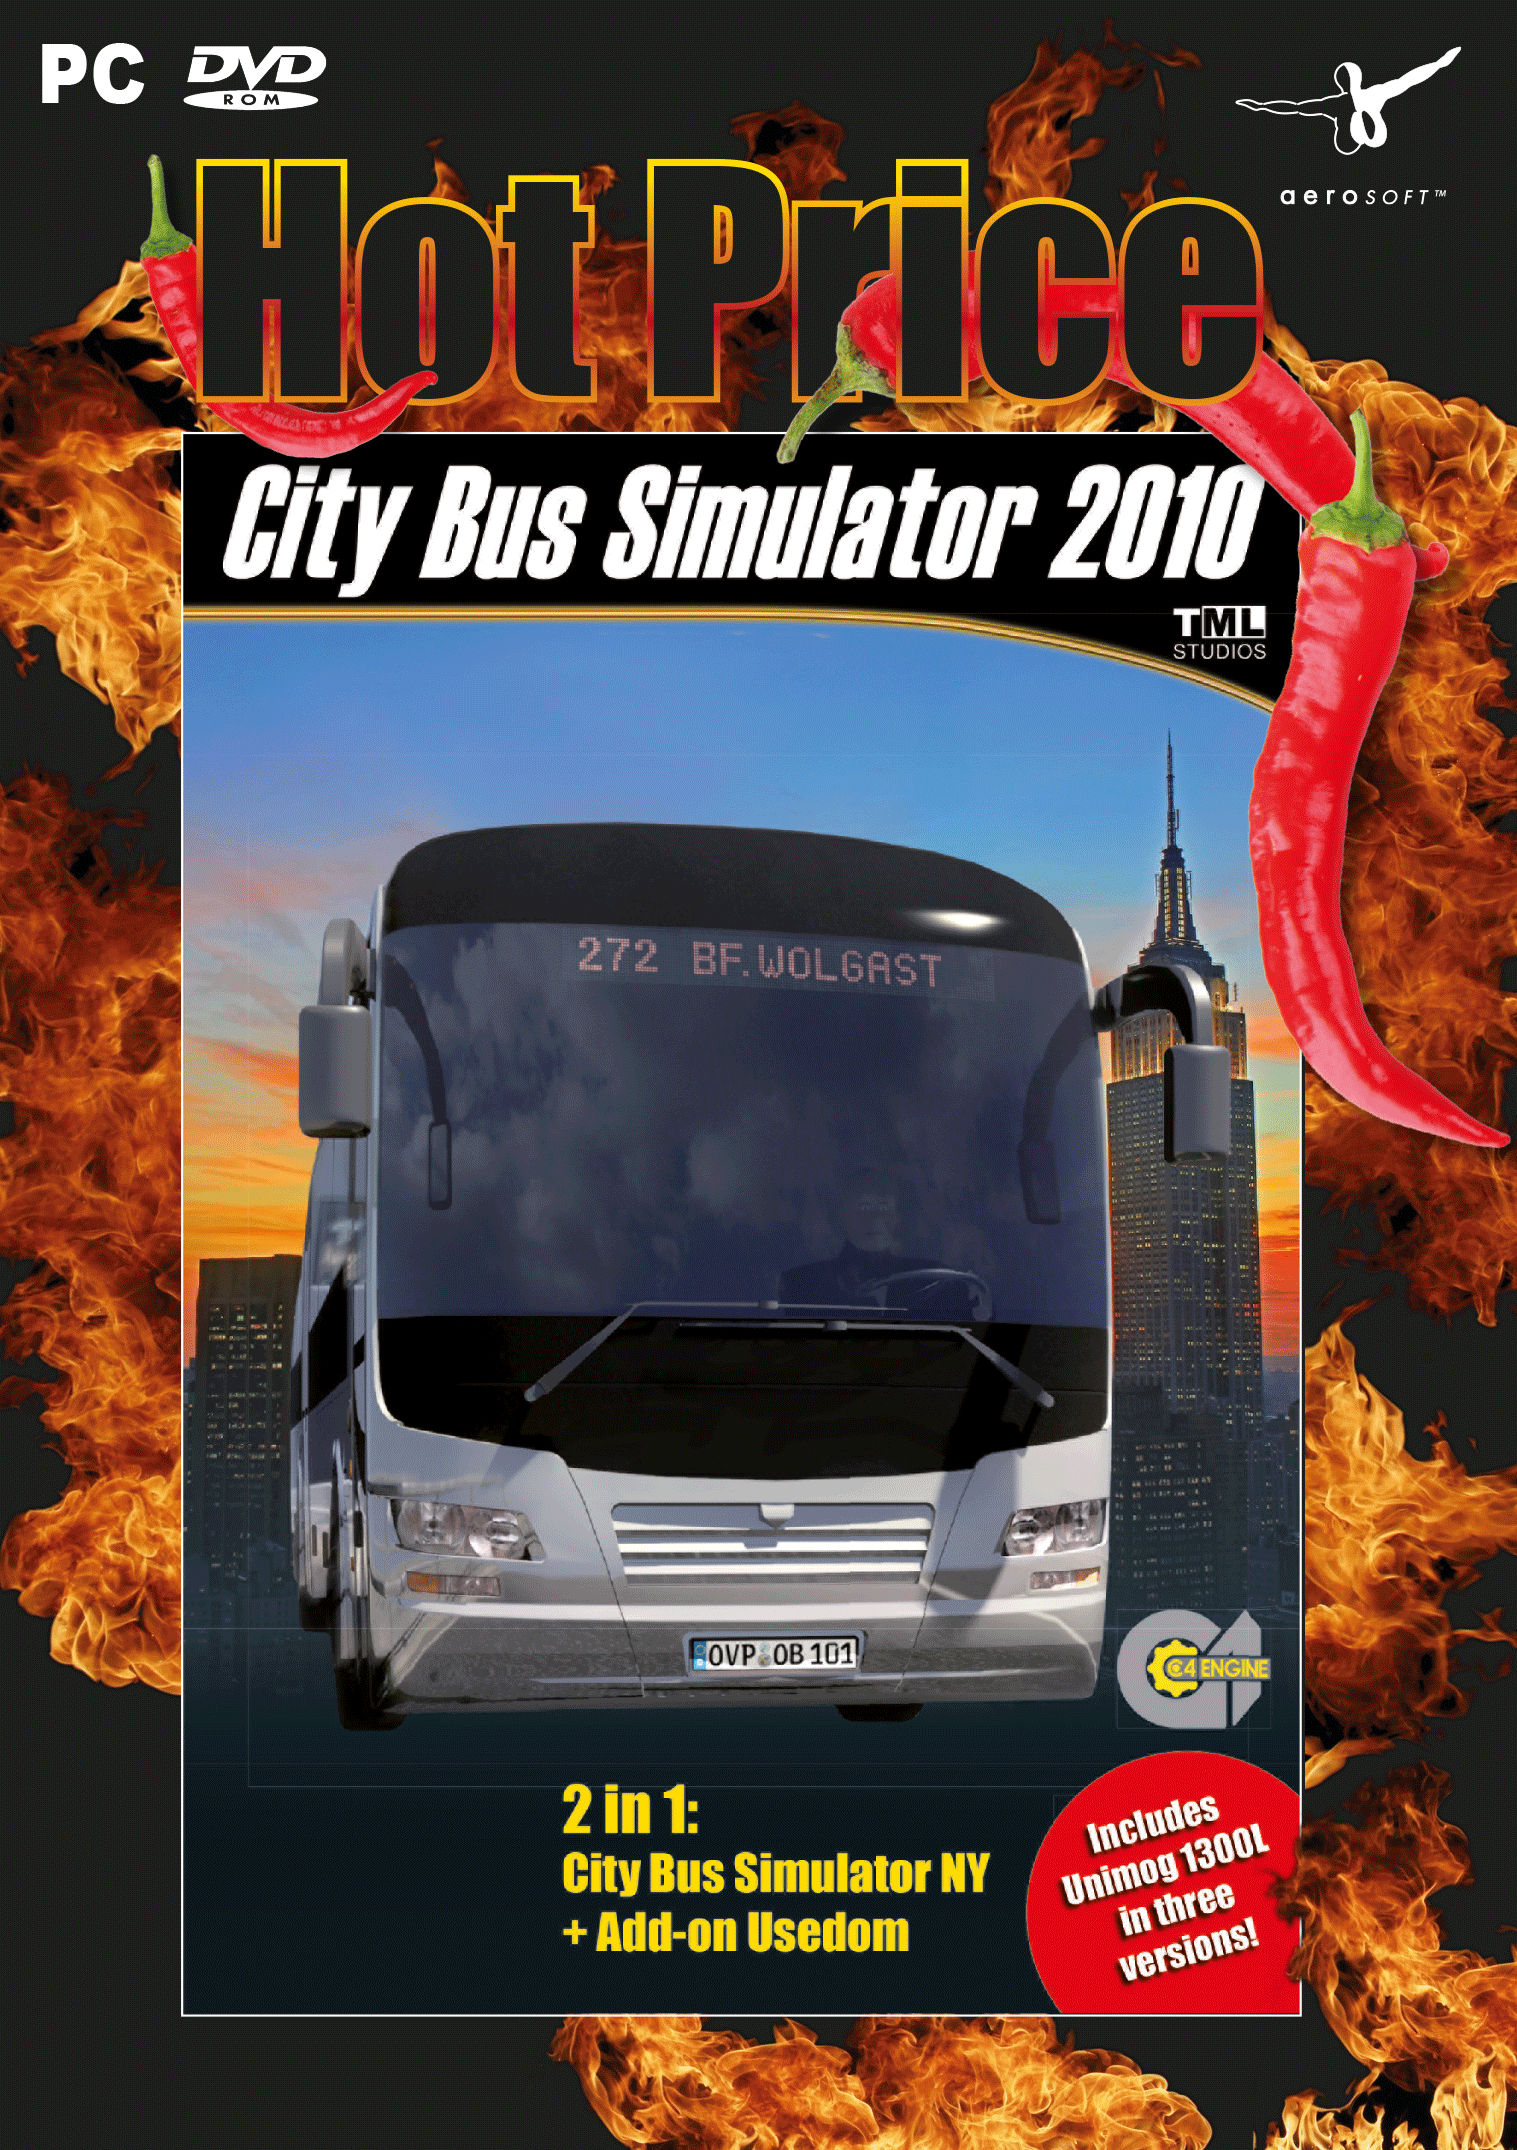 Download/gameplay] city bus simulator 2010 [part 2] youtube.